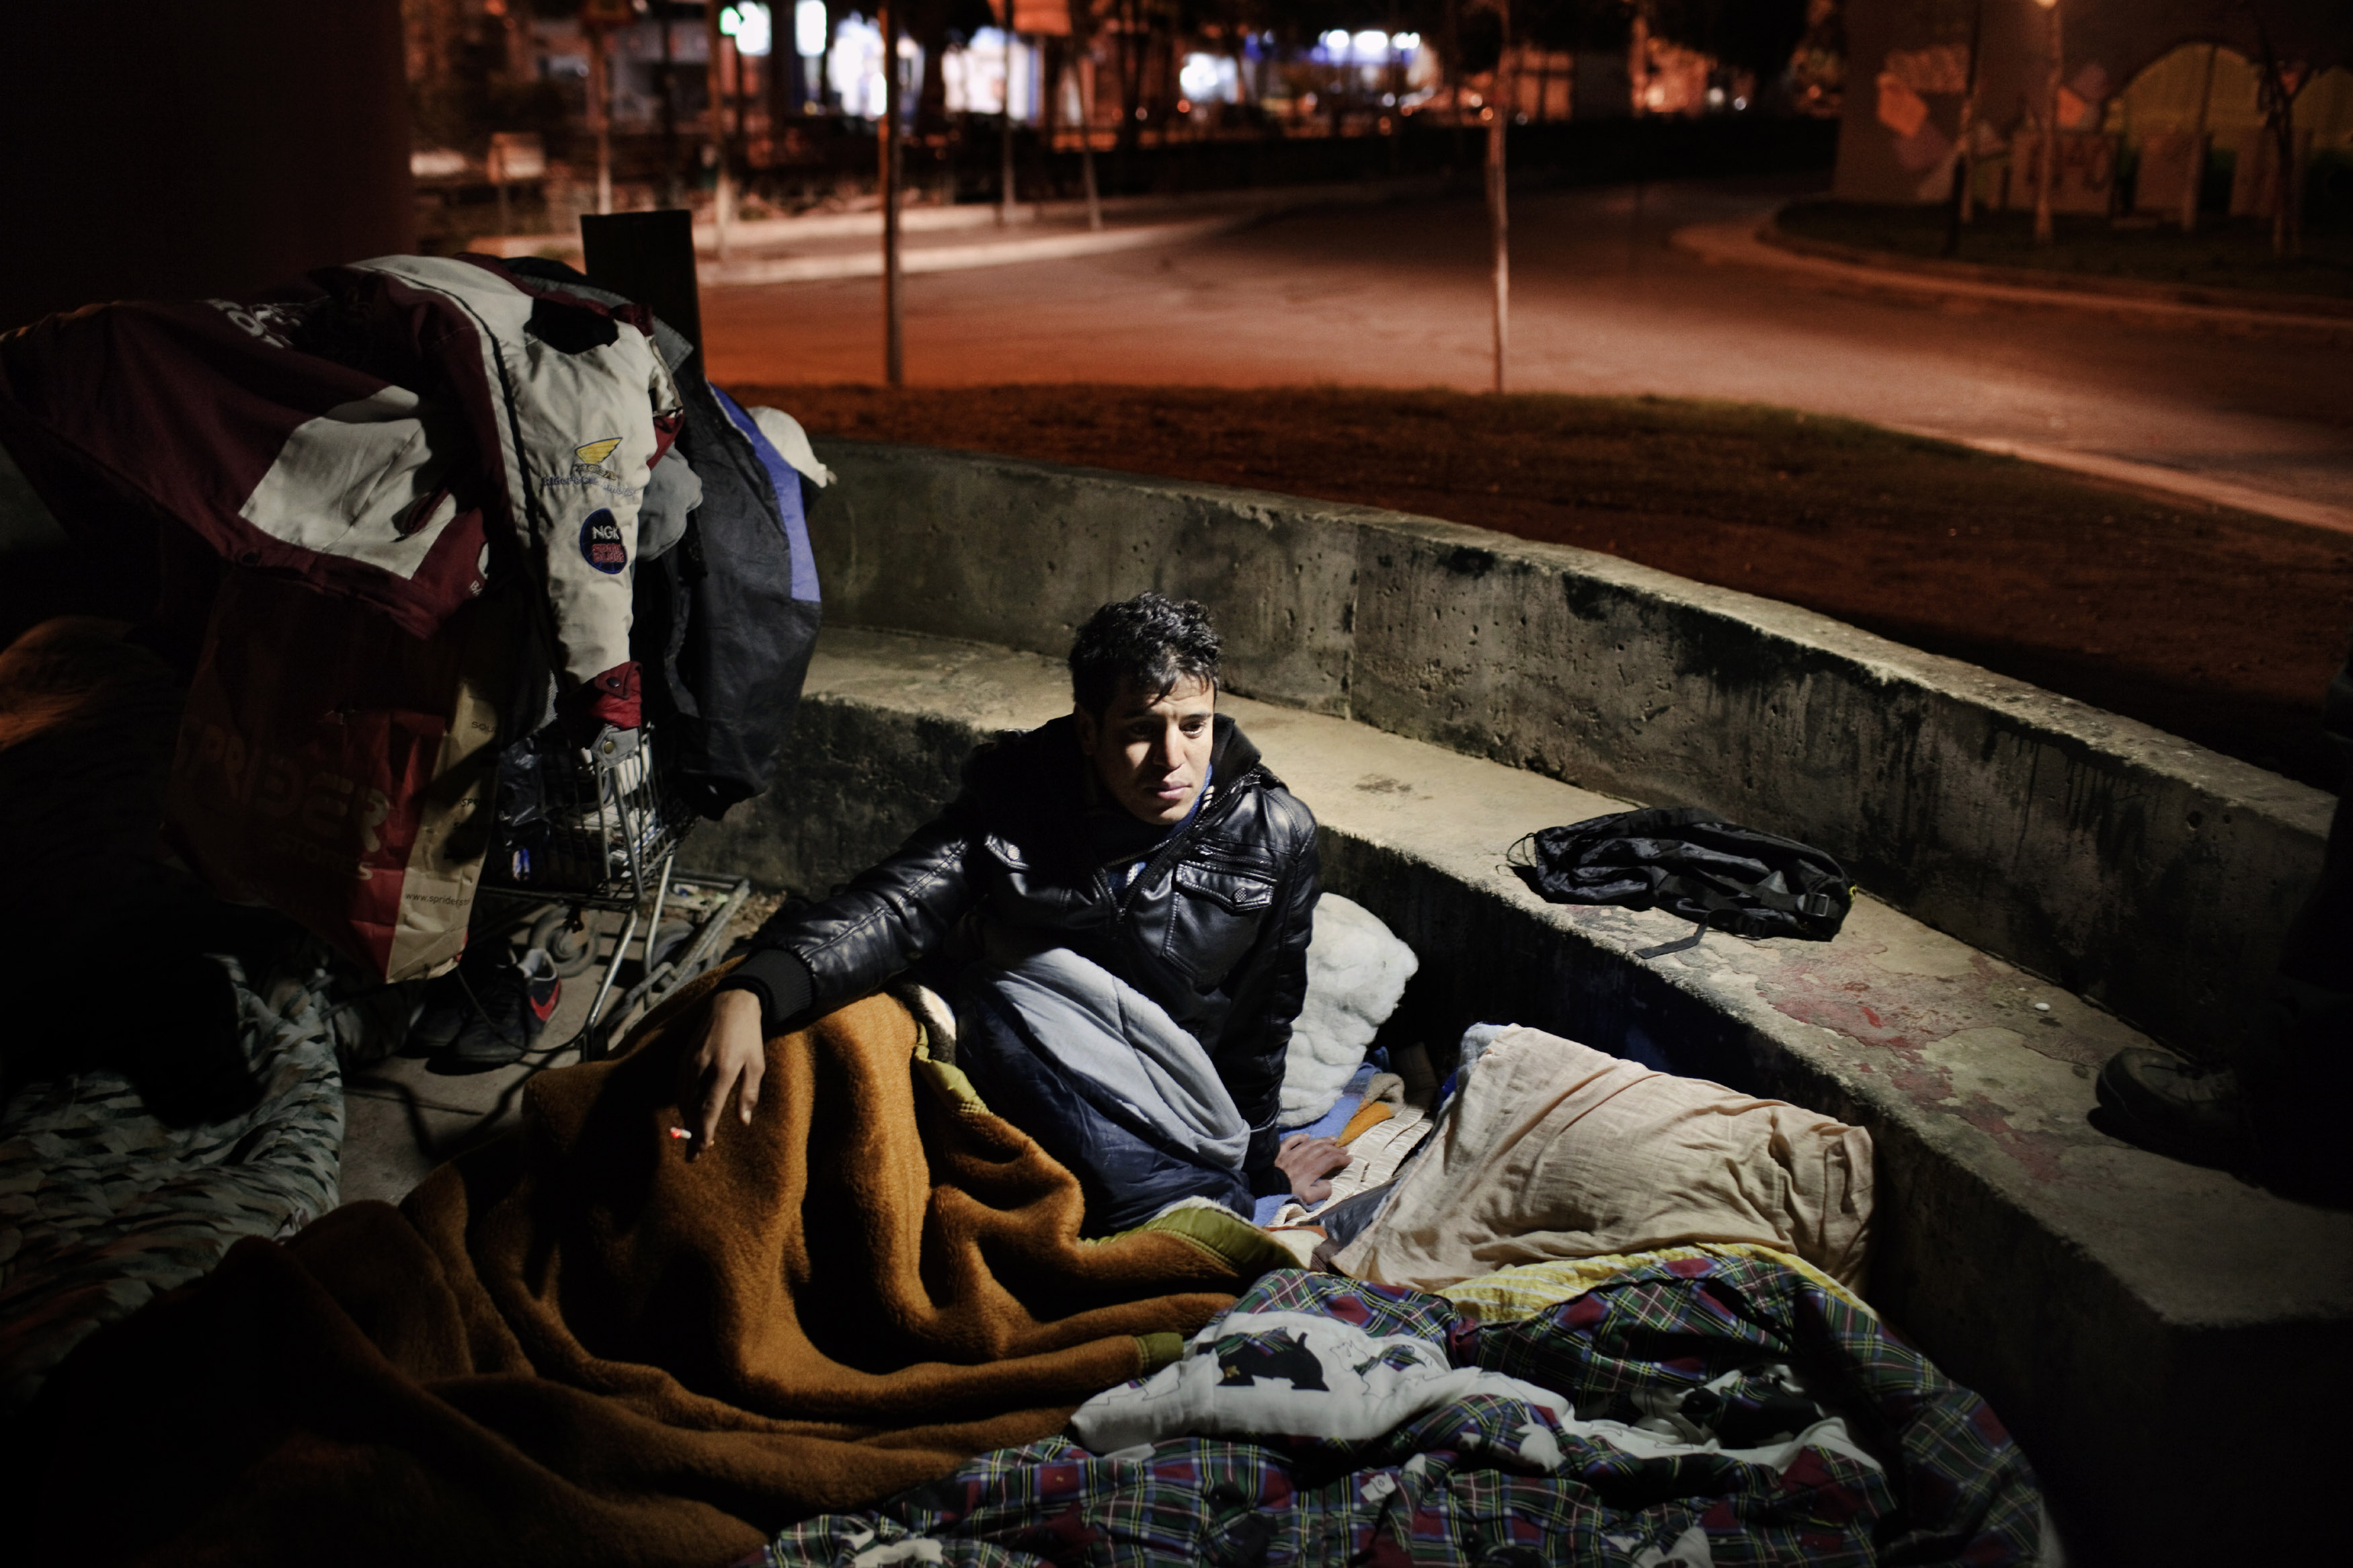 2012. Athens. Greece. A 17-year old migrant from Morocco, slept in a street near the Gazi Area. It is estimated that in 2011, migrants made up approximately 10% of the population of Greece.  Many migrants - in fact, the vast majority – are adolescents or barely over 18 – young people who have not been able to experience their youth, are left to fend for themselves on the streets they live on.